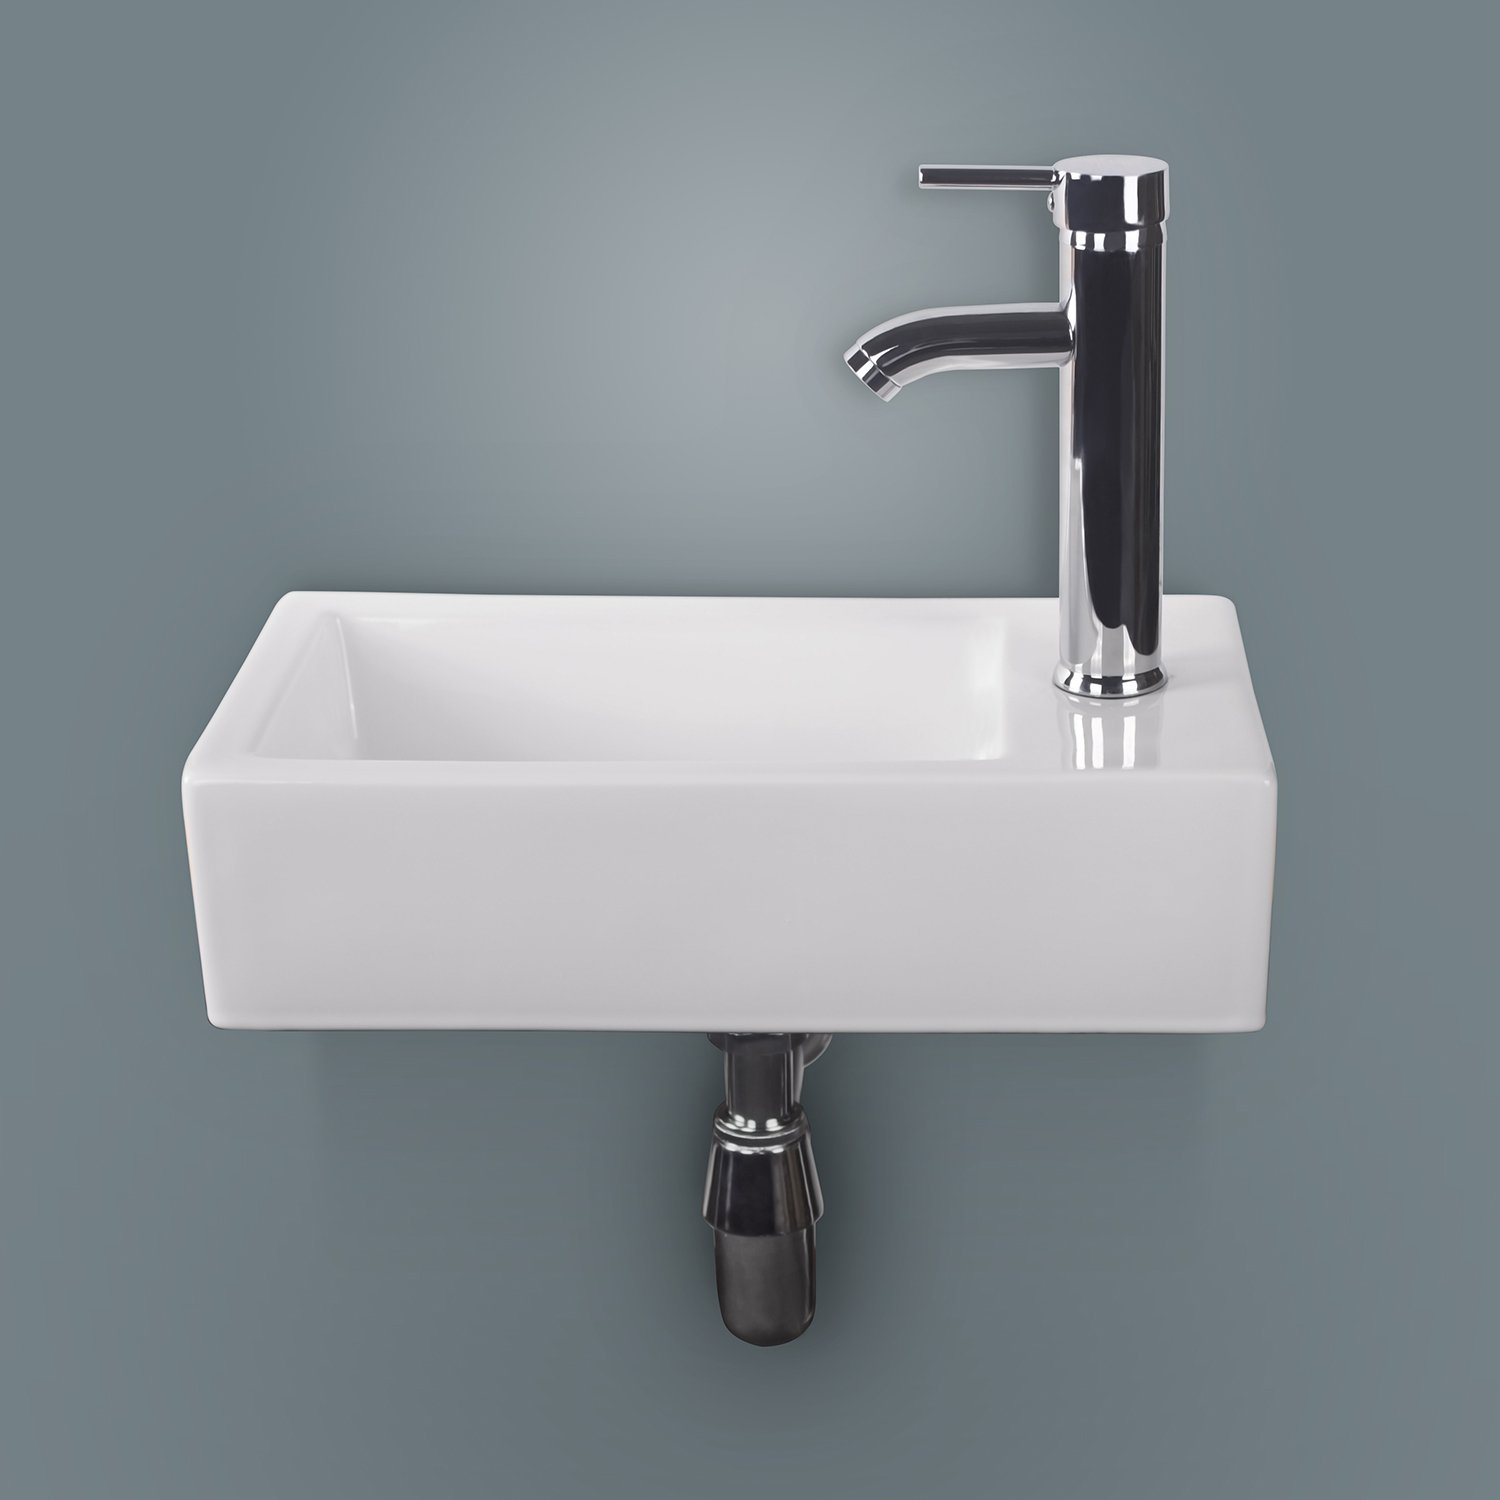 Sliverylake Wall Mount Rectangle White Porcelain Wall-Hung Corner Ceramic Vessel Sink Small & Chrome Faucet Combo